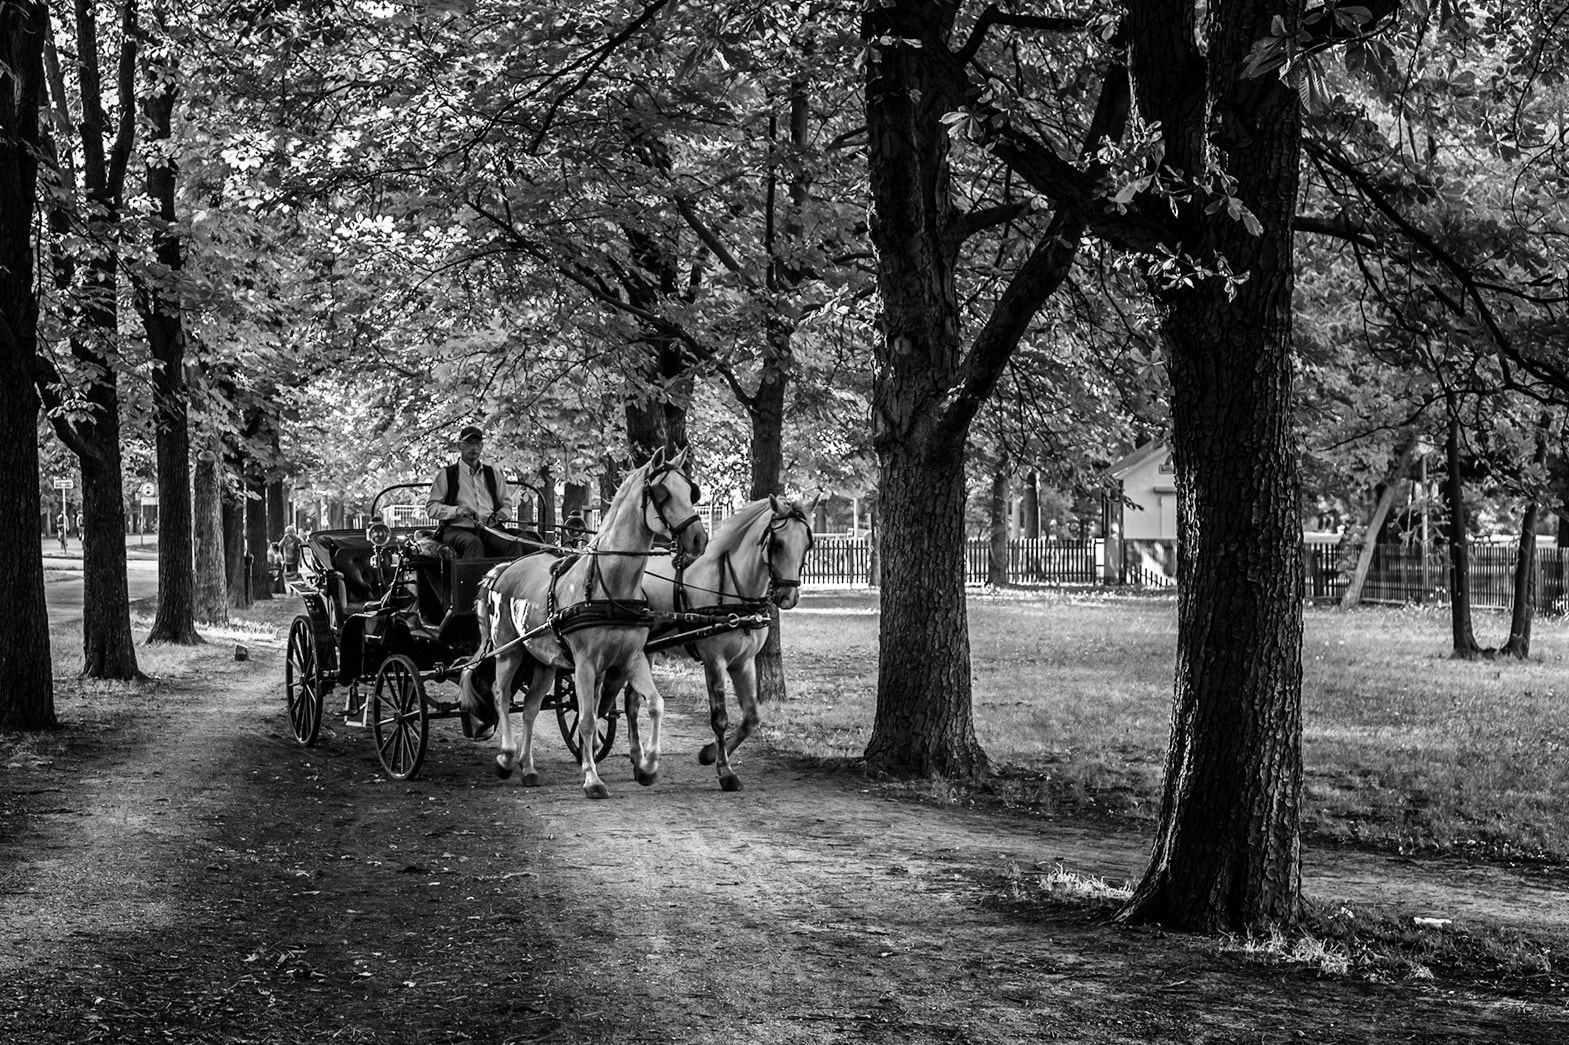 Photograph Carriage by Florian Feuchtner on 500px